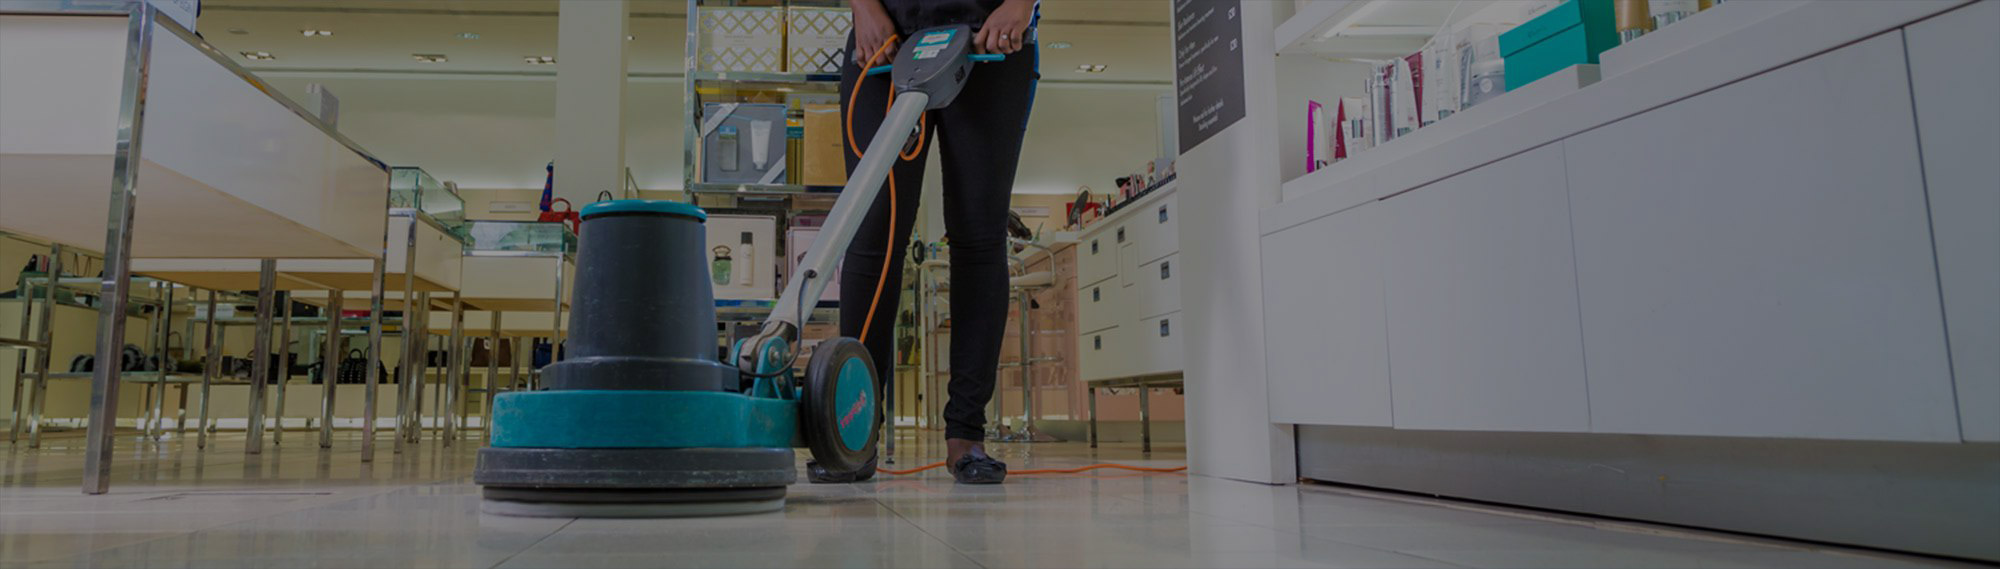 Contract Cleaning Melbourne